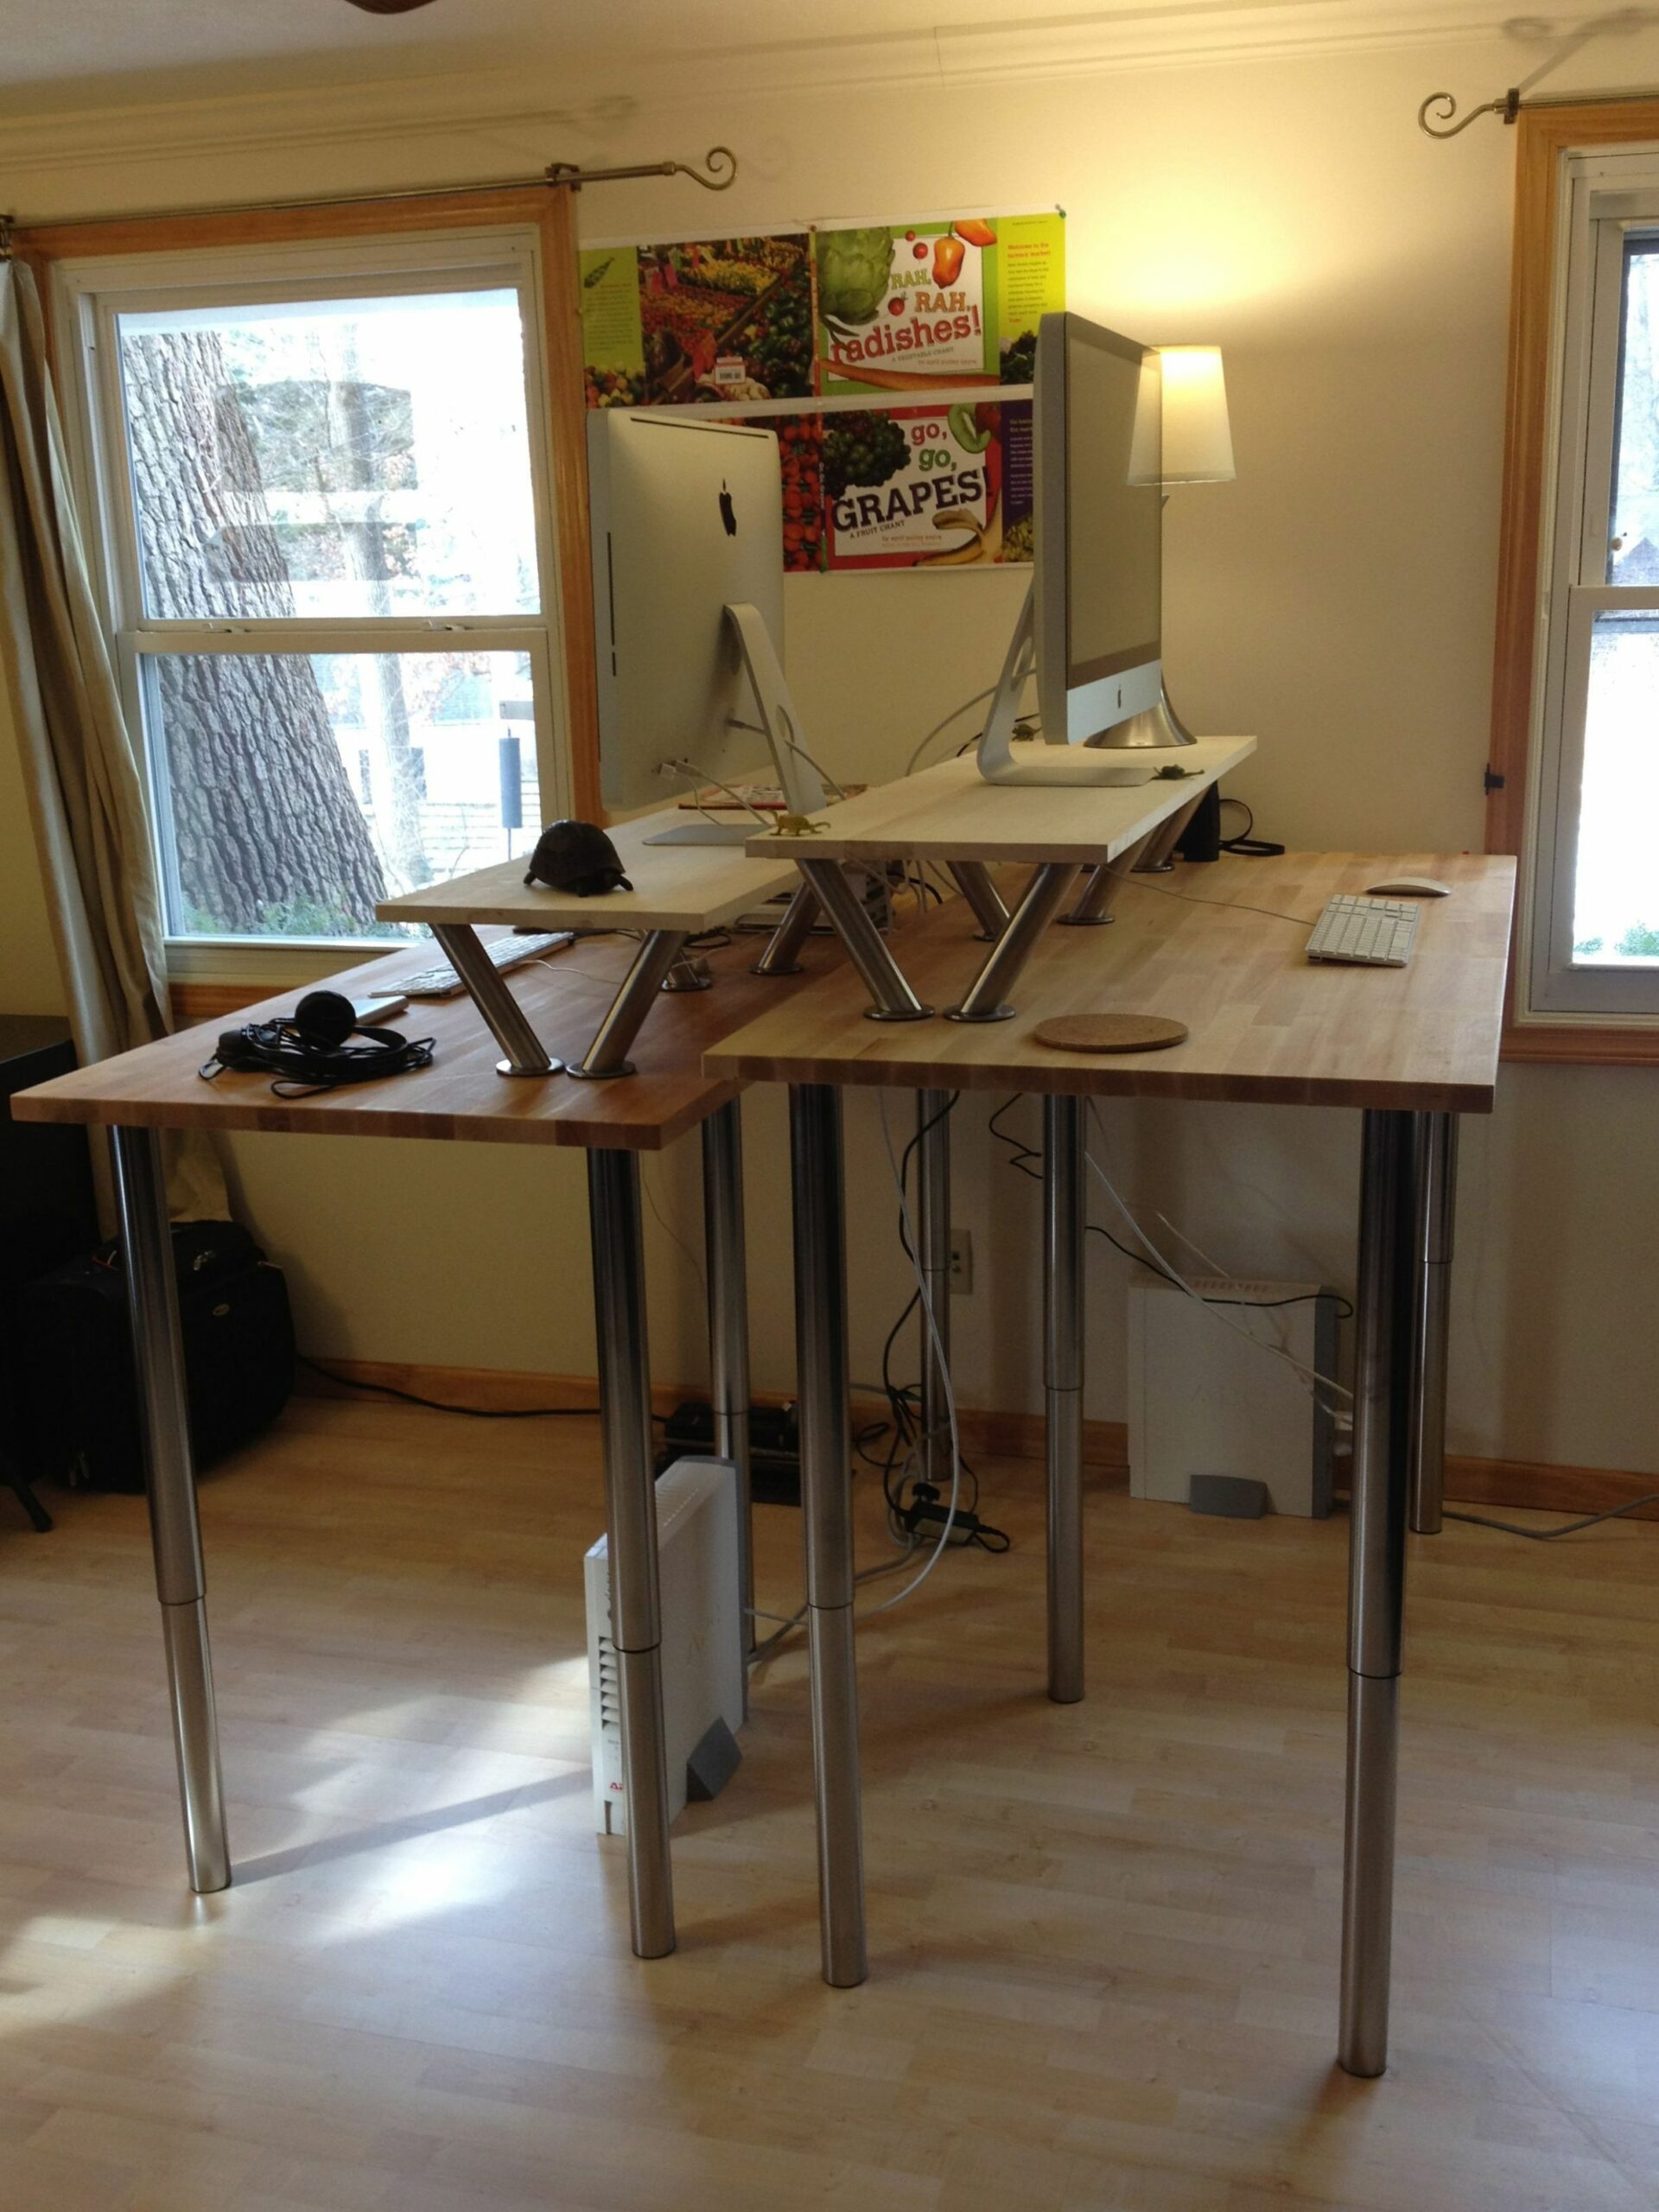 All Rise or A Standing Ovation (With images) | Diy standing desk